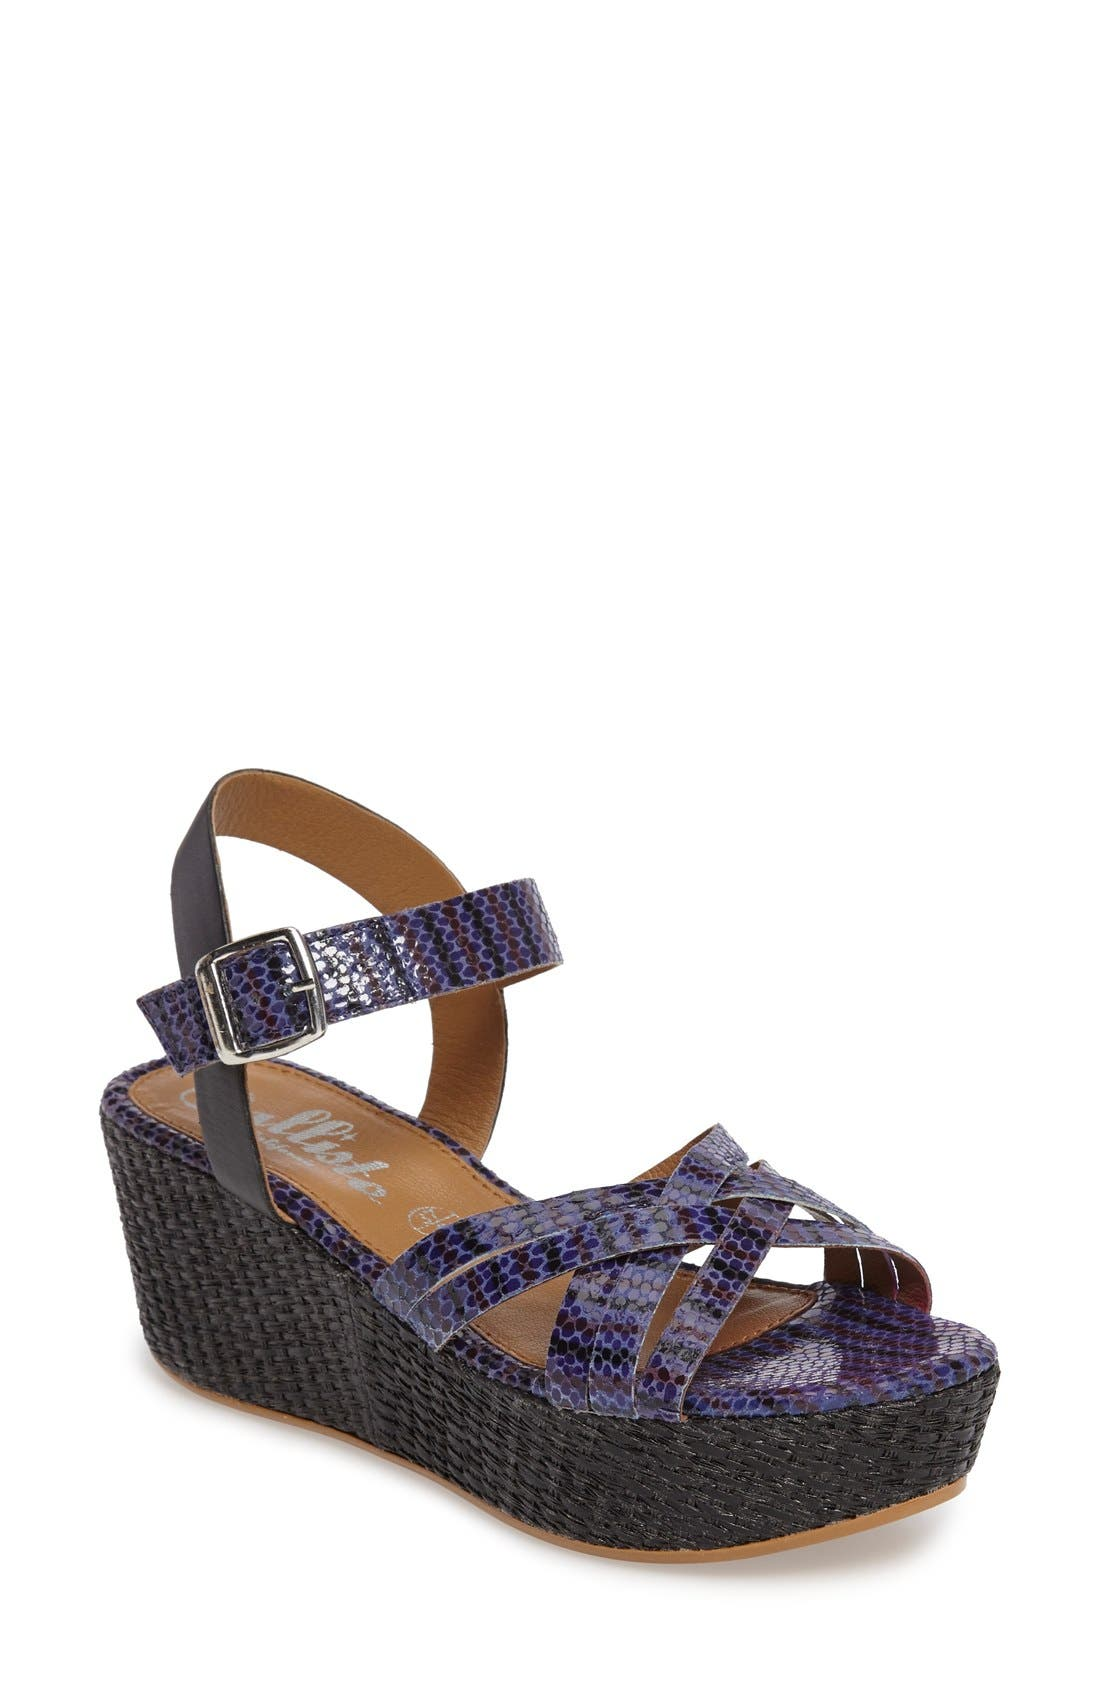 Valencia Platform Wedge Sandal,                         Main,                         color, 429